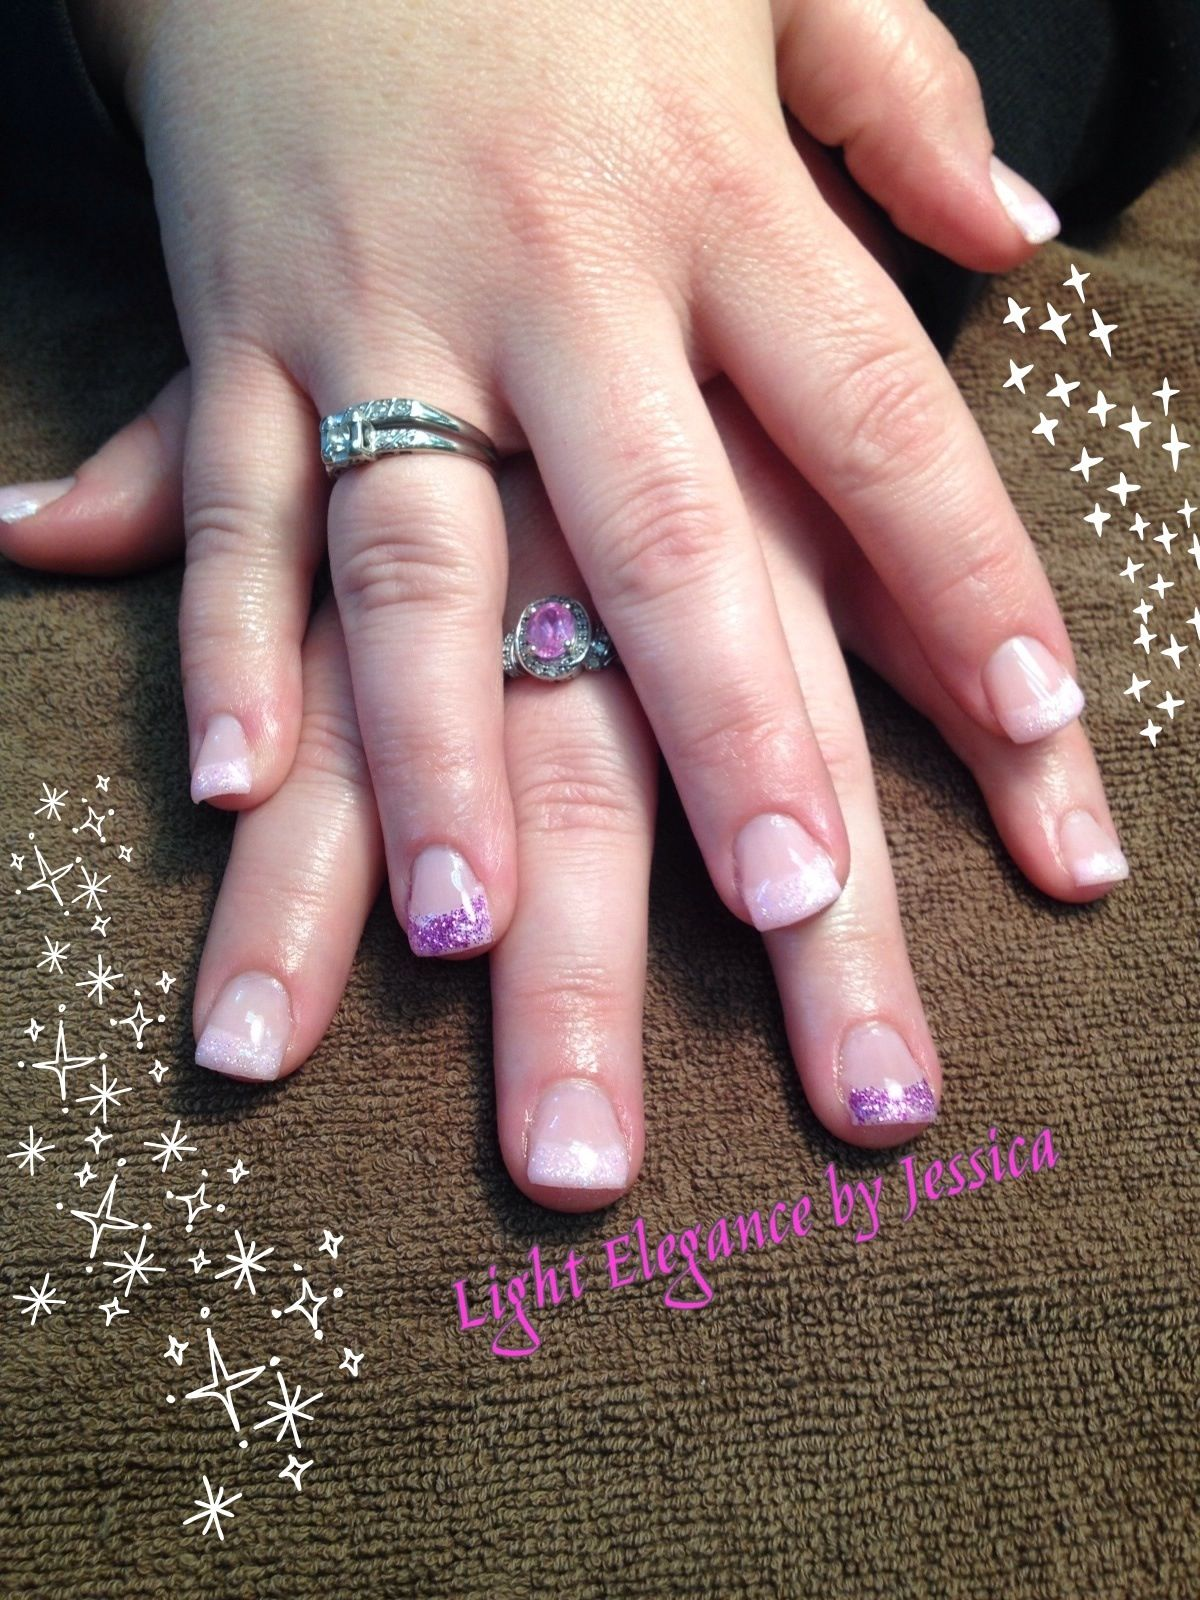 Light Elegance gel nails. A nice simple baby pink French with a ...